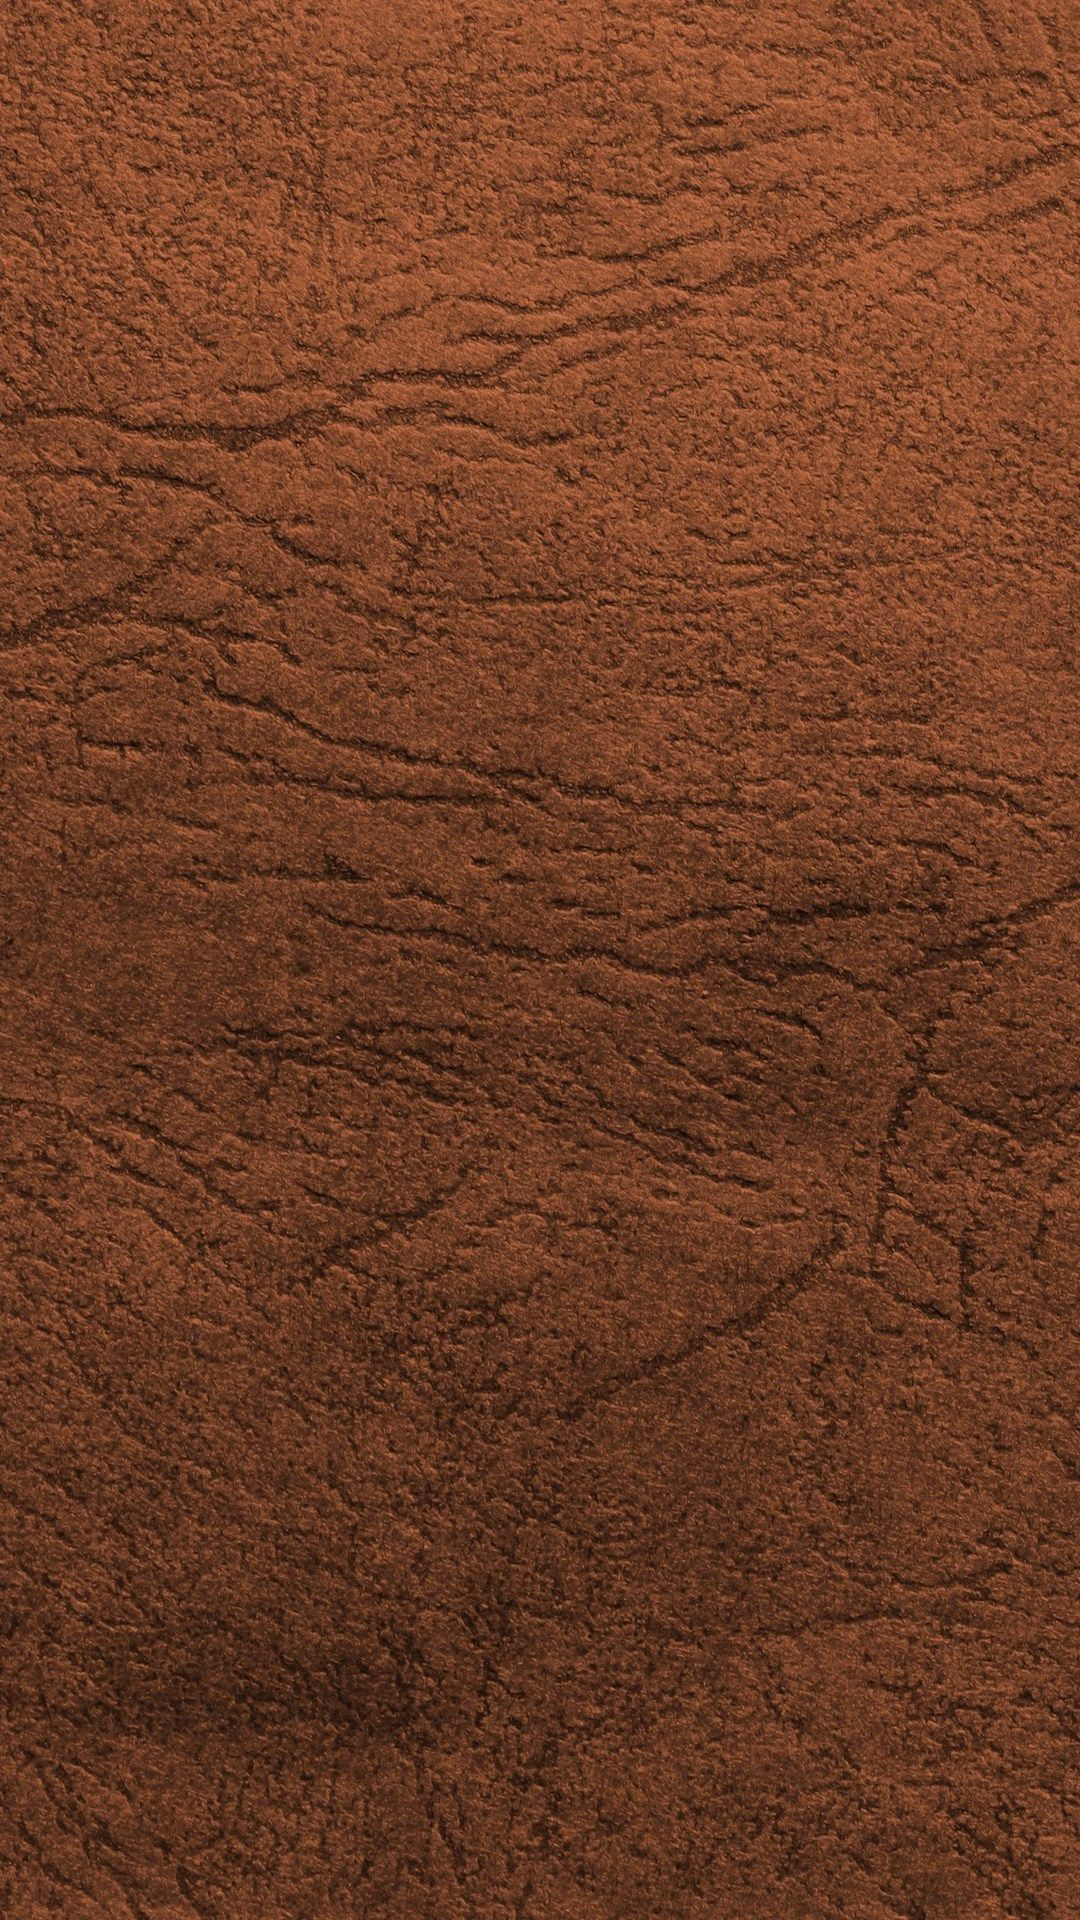 Download Wallpaper x Skin Texture Leather Brown Mobile